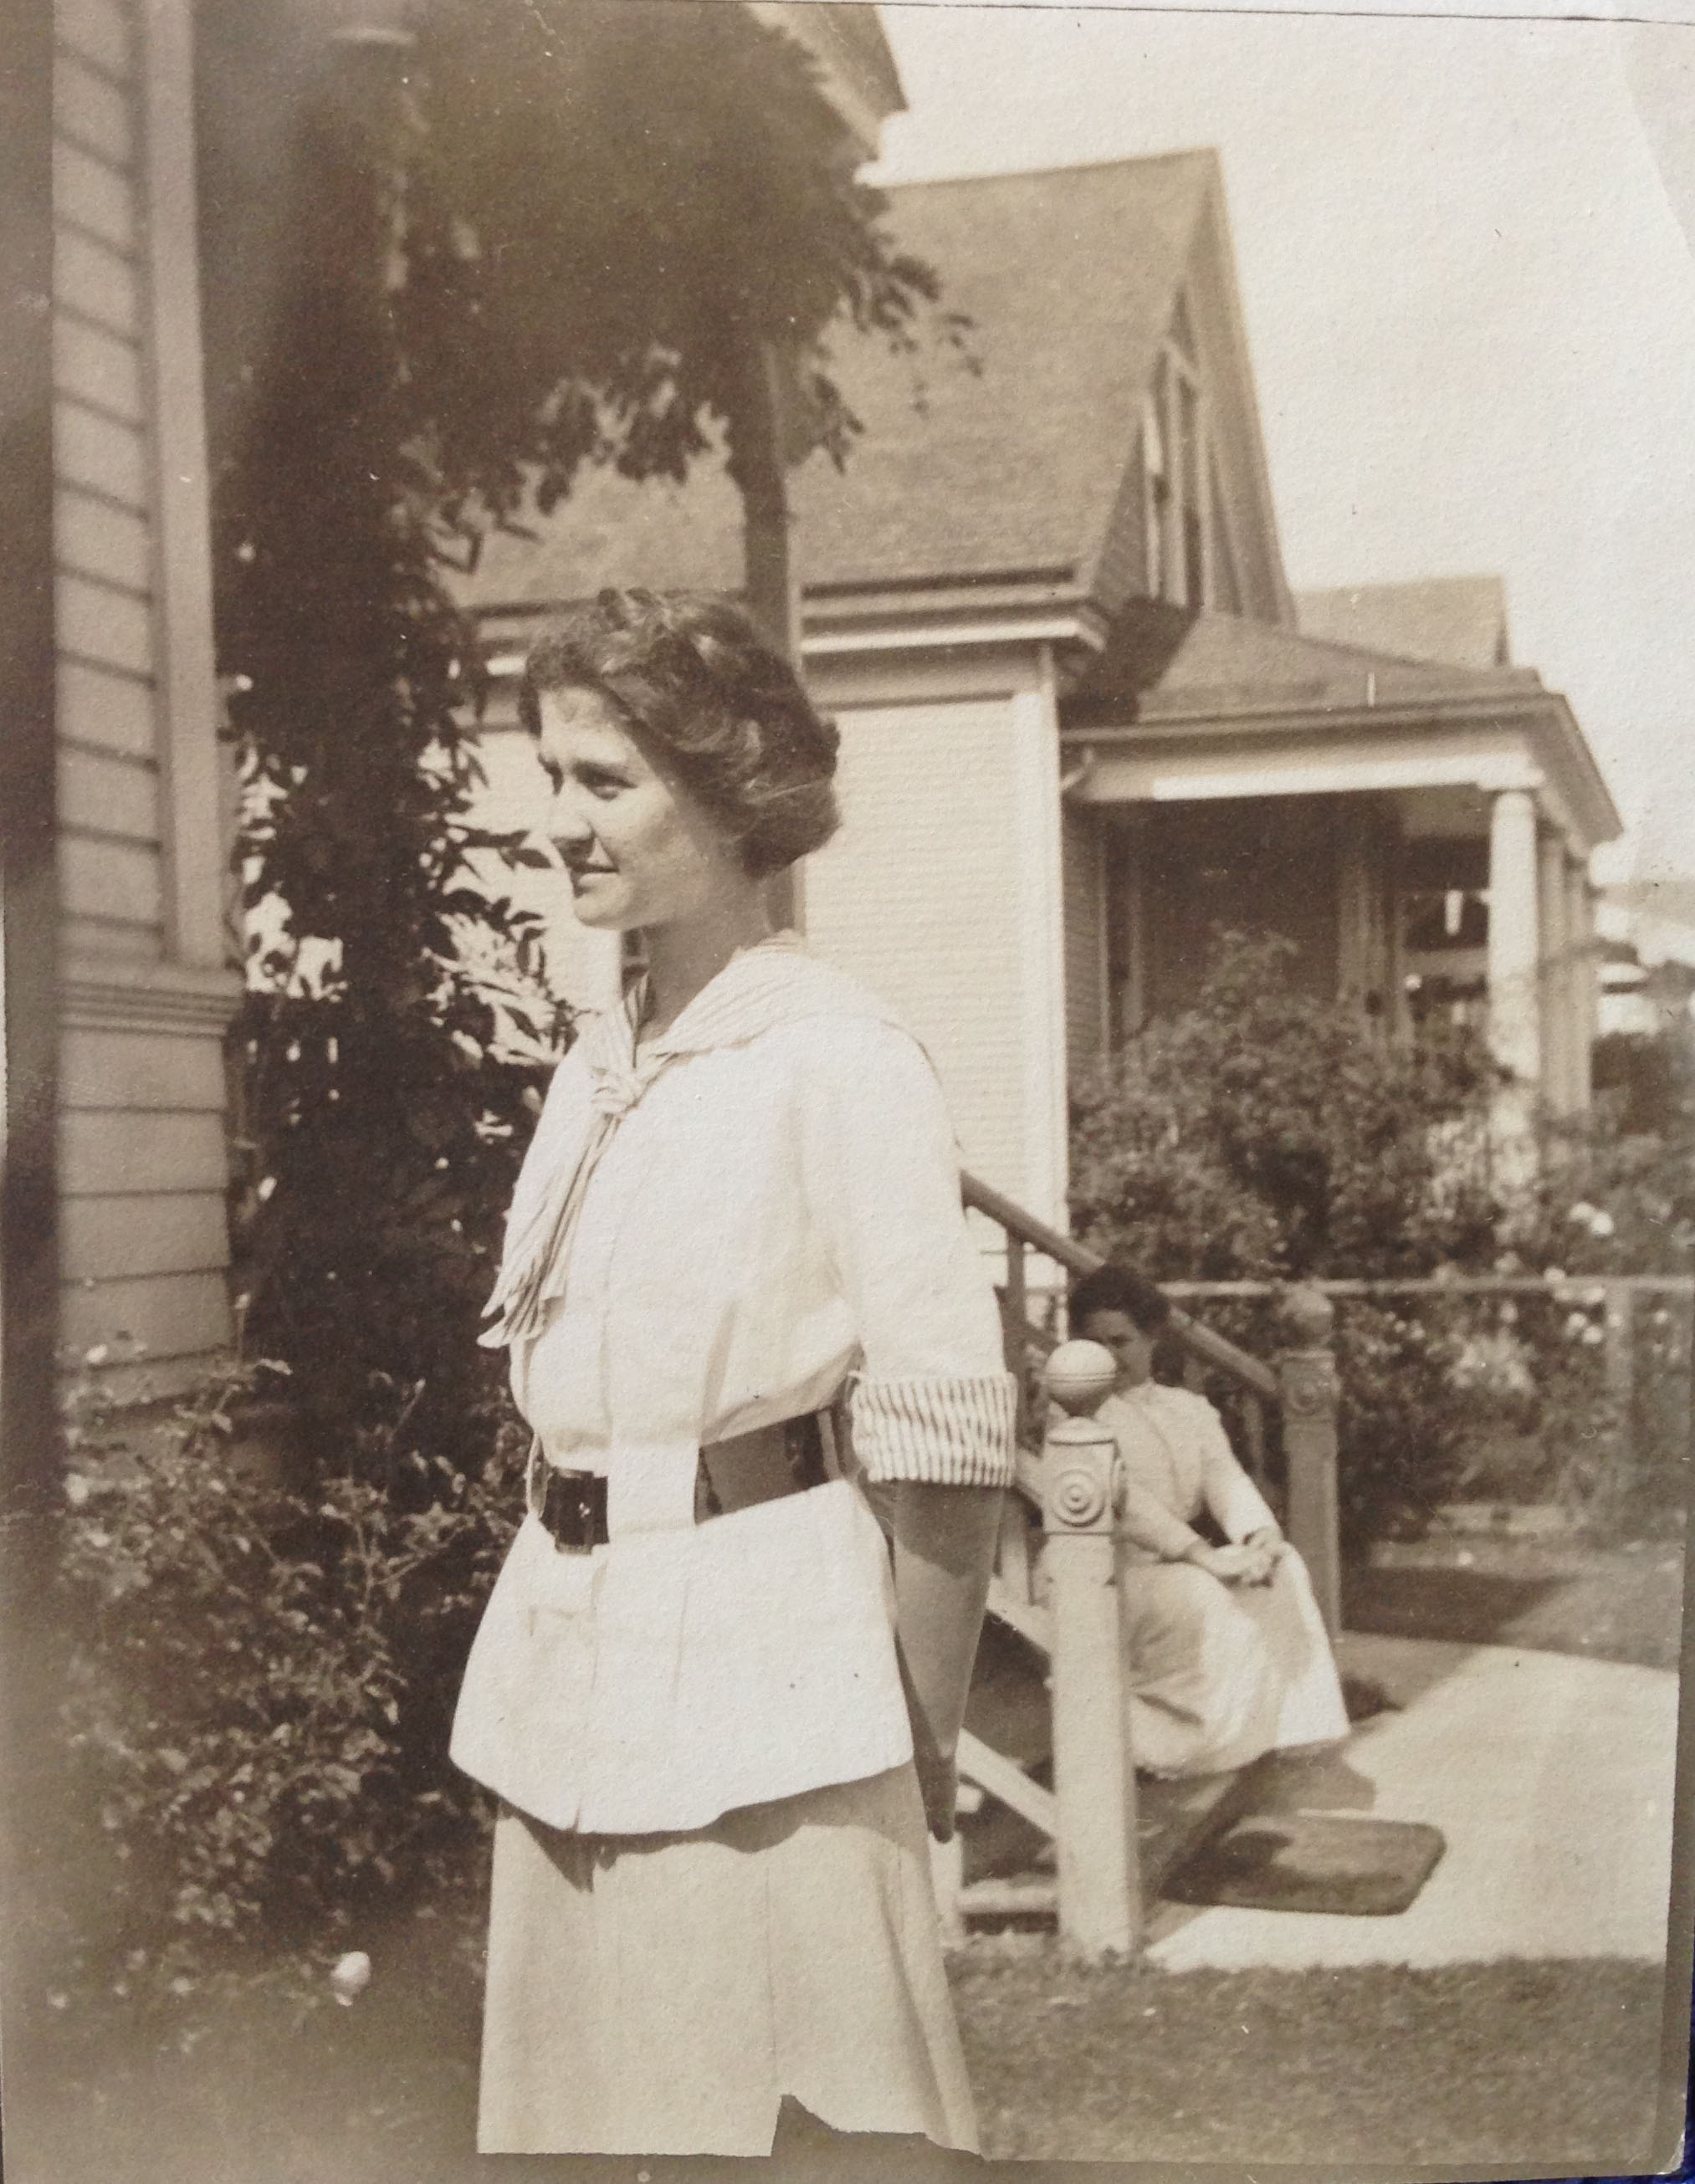 Lucile Boyd, my grandfather's aunt, in California. She contracted Tuberculosis and planned to travel to New Mexico to heal. She passed away a few weeks before the trip.